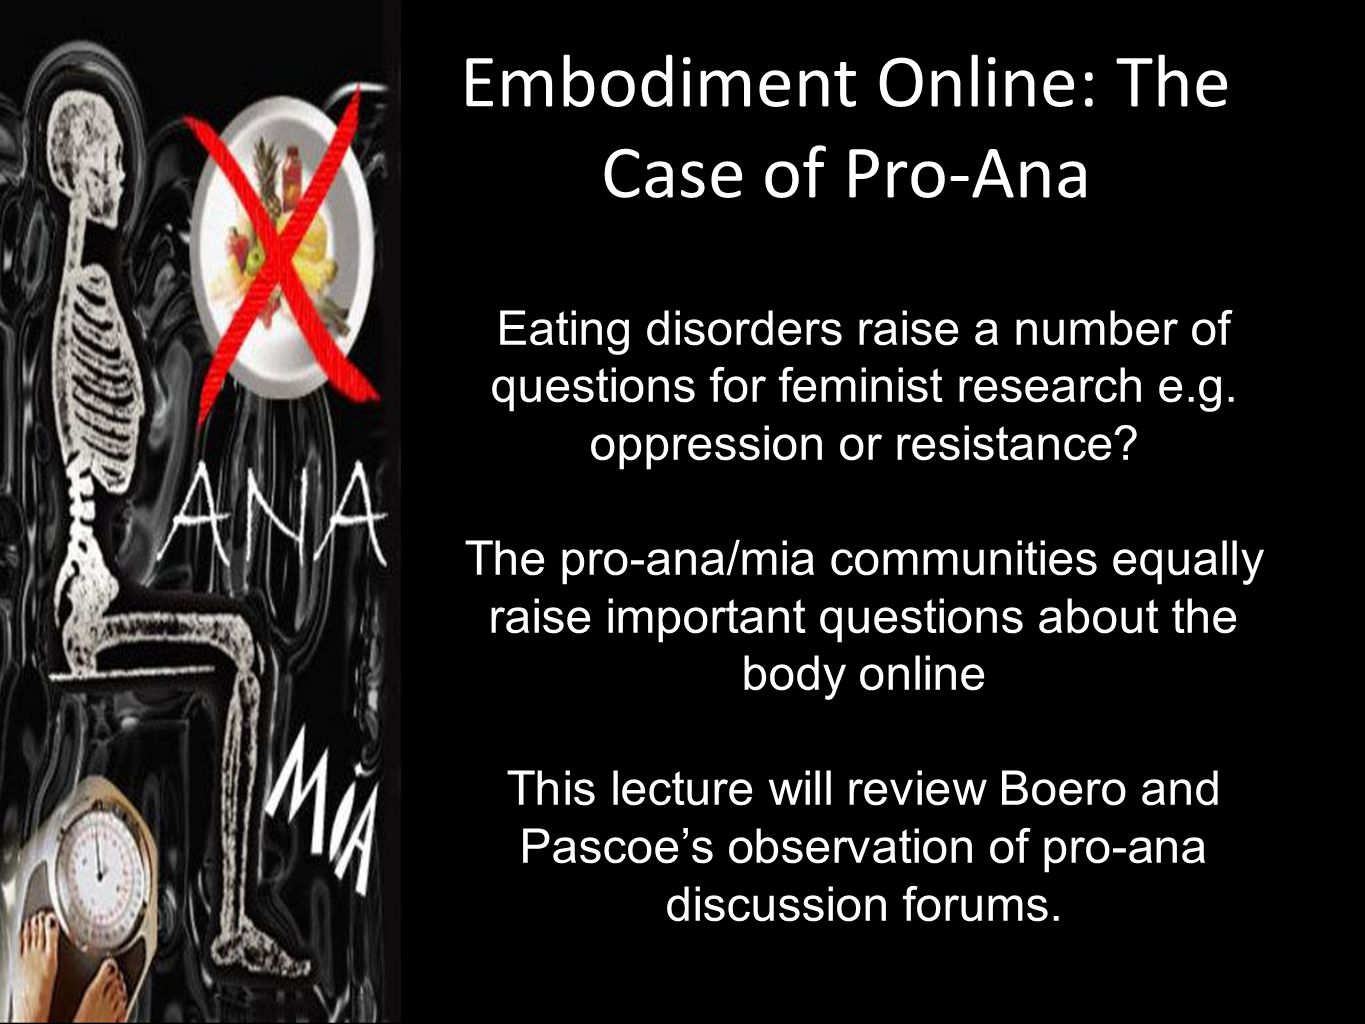 Embodiment Online: The Case of Pro-Ana Eating disorders raise a number of questions for feminist research e.g. oppression or resistance? The pro-ana/m